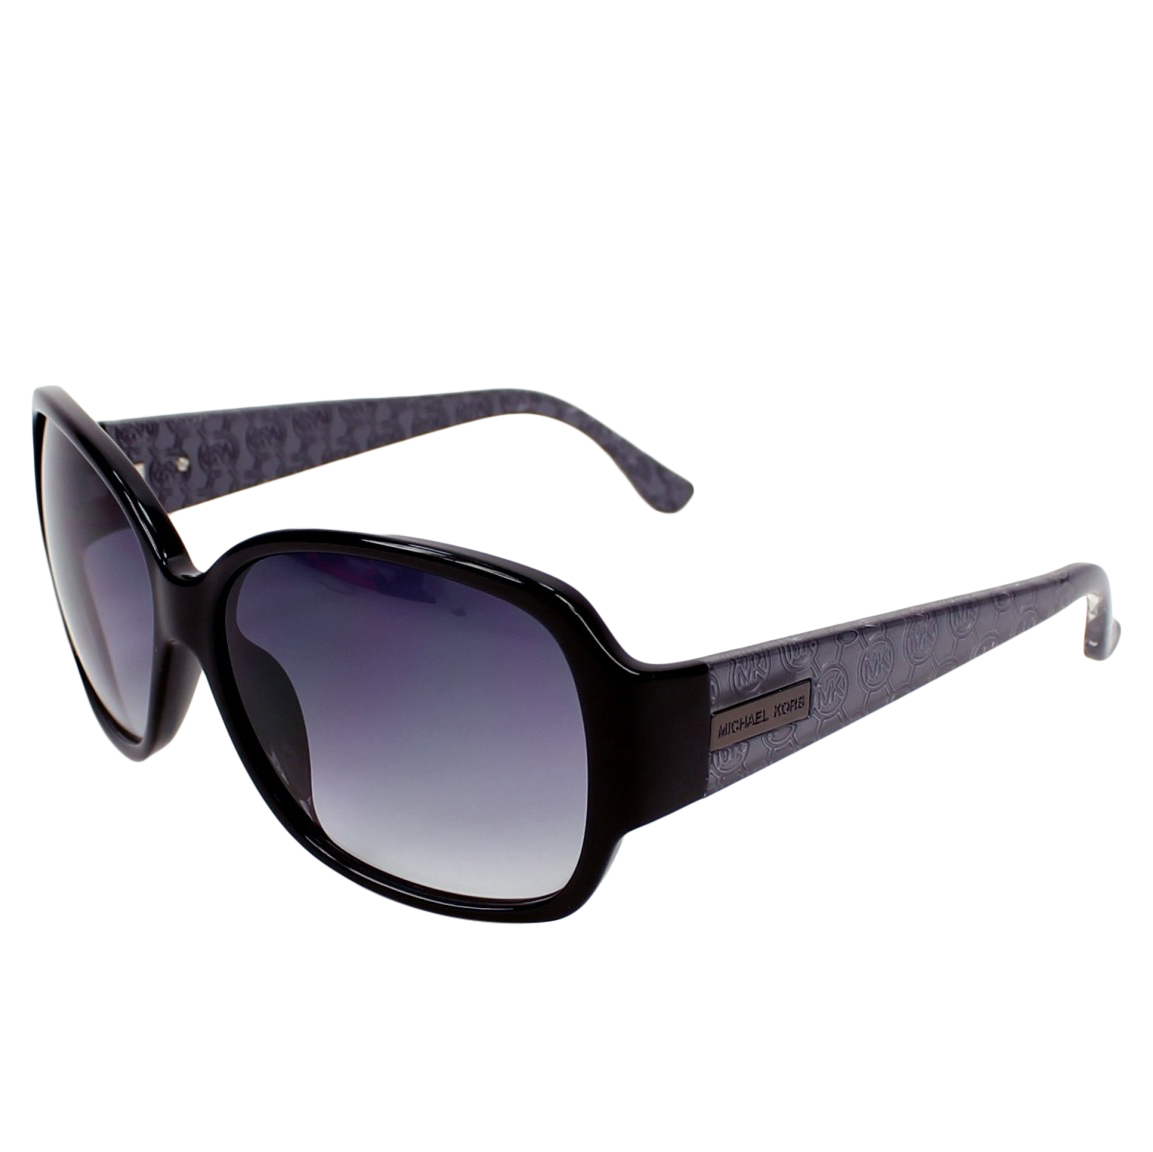 Michael Kors Caitlyn M2845S 001 Black Sunglasses